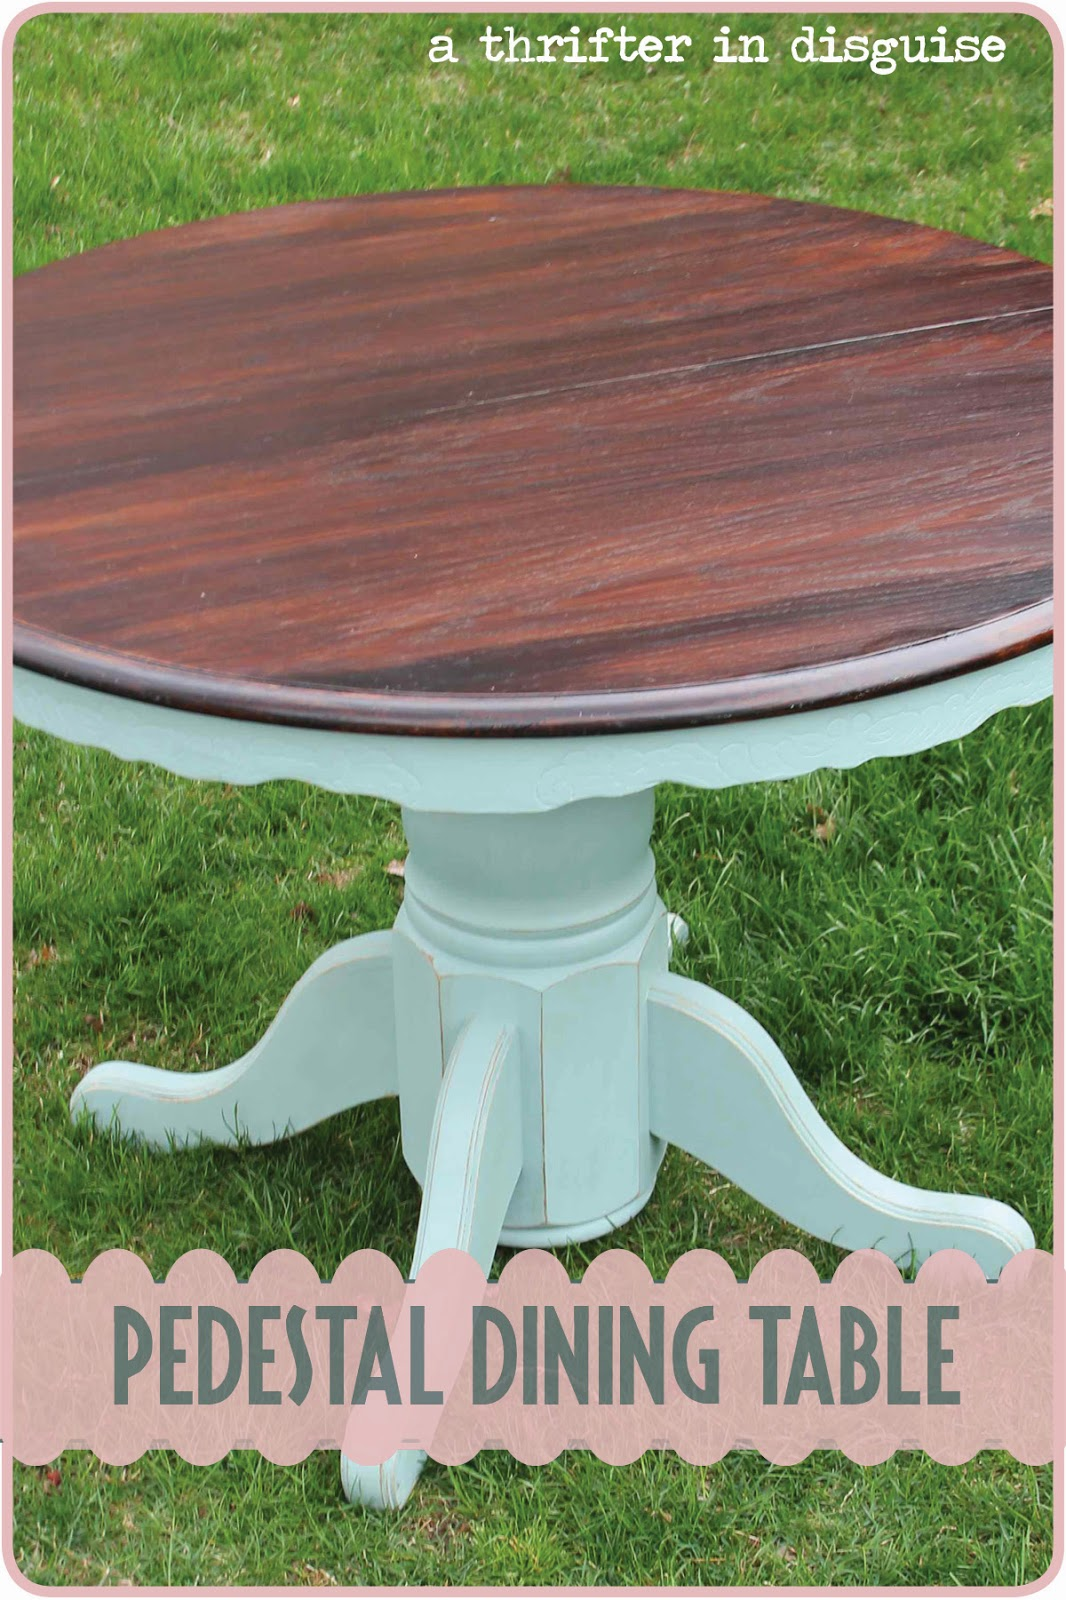 http://www.thrifterindisguise.com/2013/04/craiglist-dining-table-transformation.html